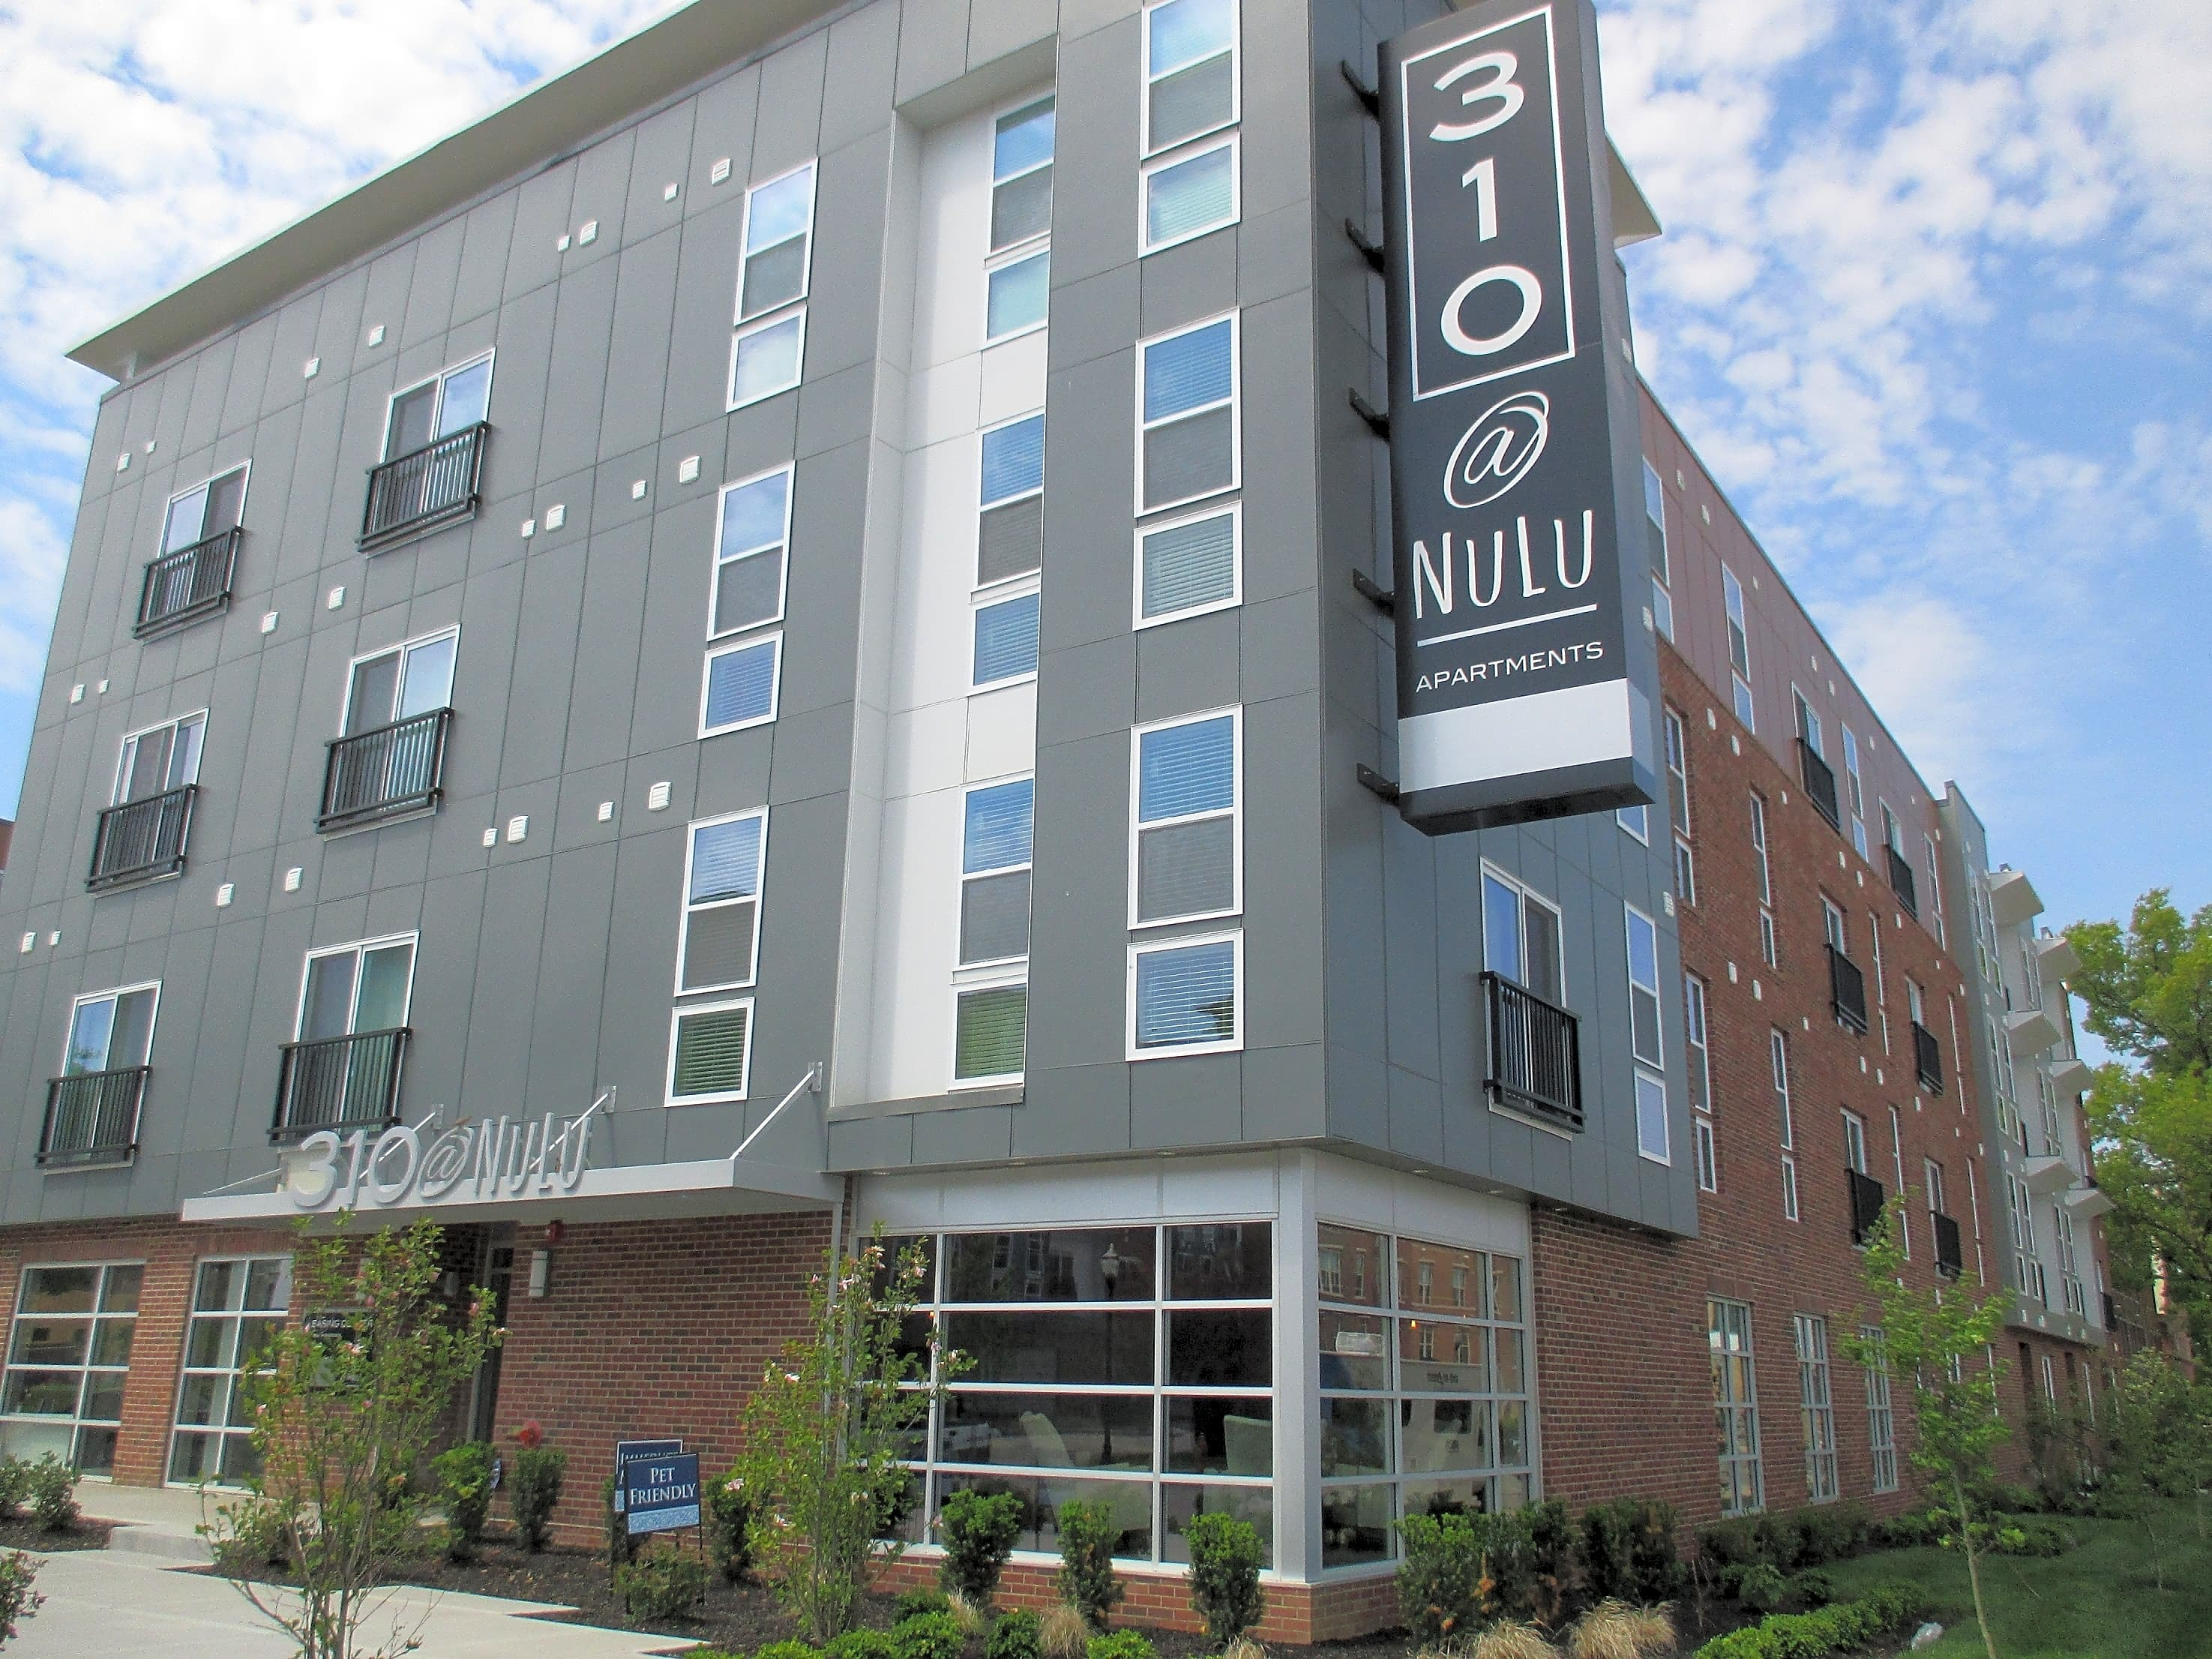 Apartments Near Spalding 310 At NuLu for Spalding University Students in Louisville, KY